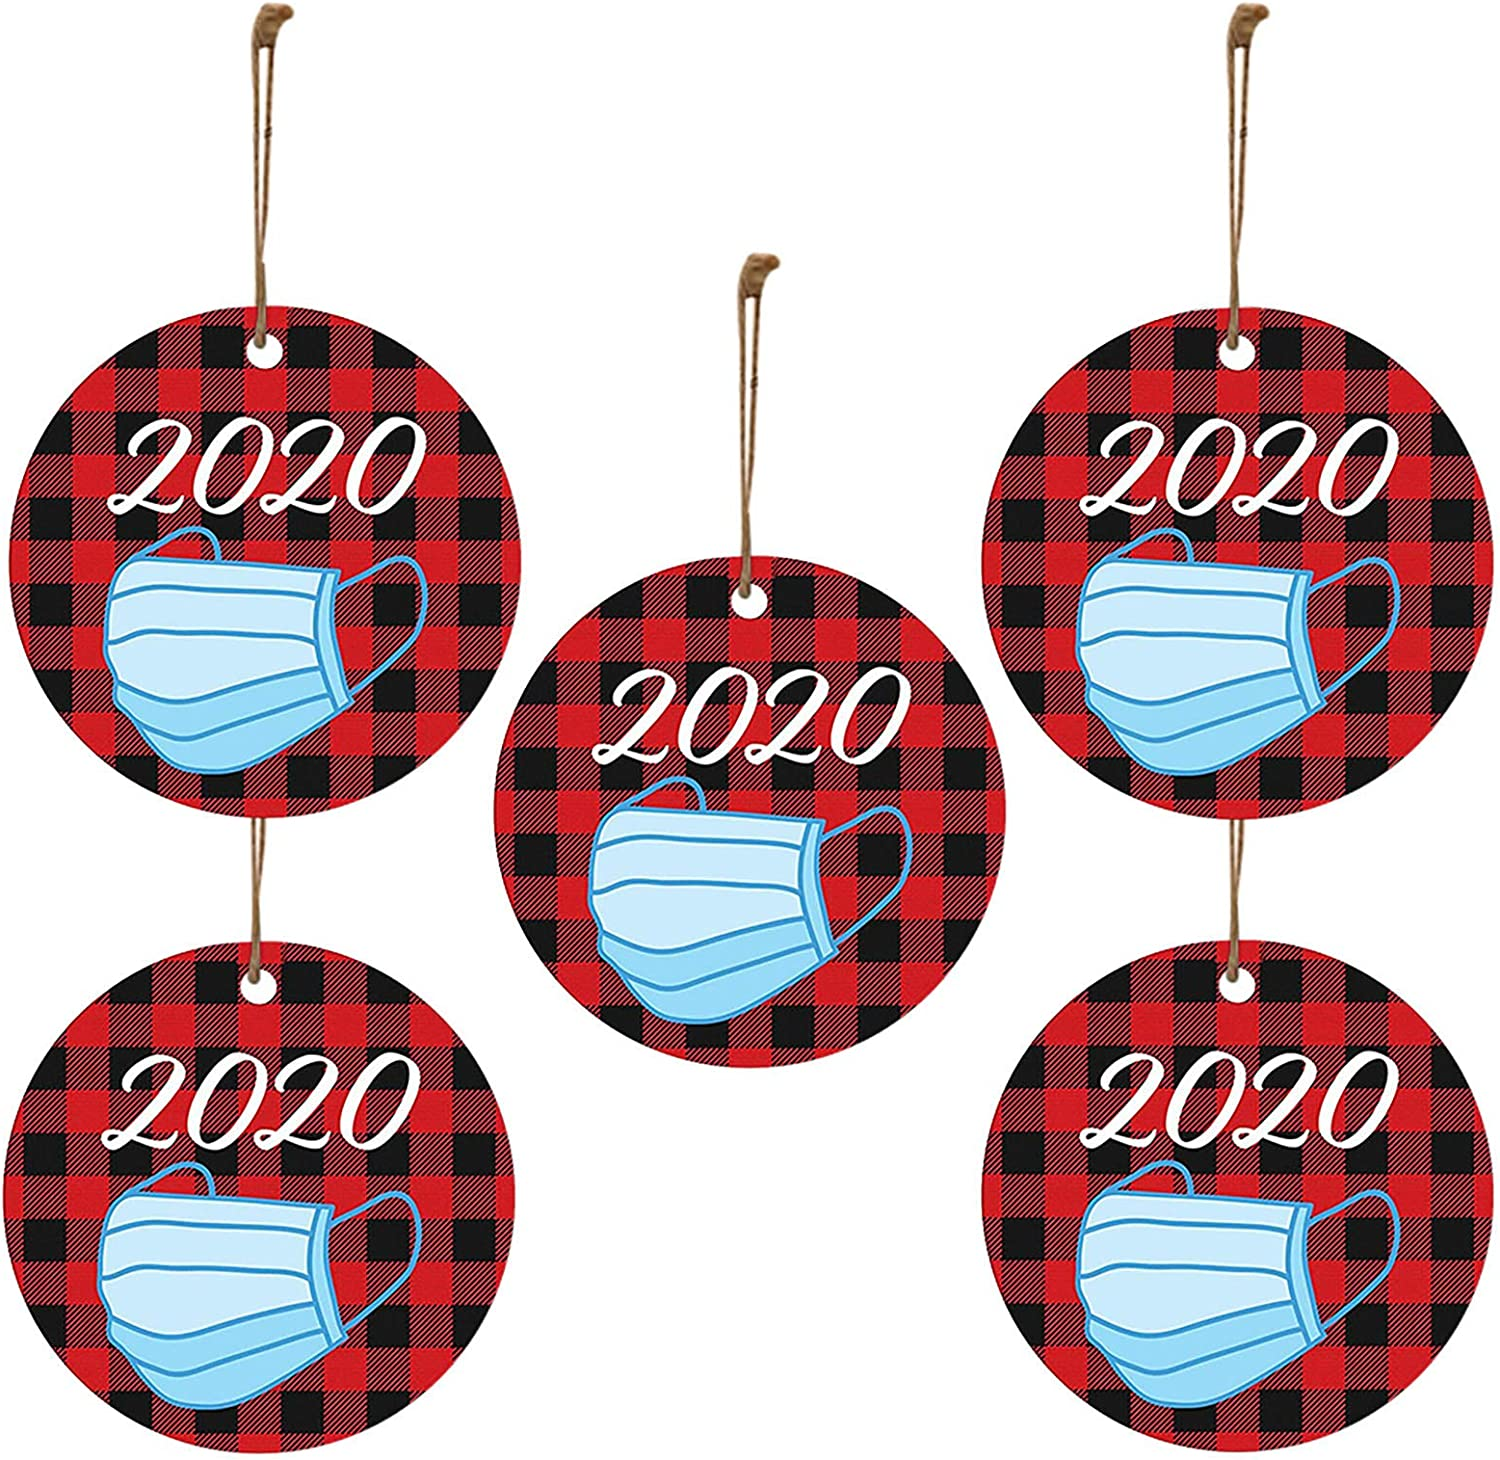 GBSELL Christmas Decorations, Christmas Ornaments 2020, Santa Claus Ornaments for Christmas Tree, Wood Decorative Hanging Ornaments, Gift Wrap Decor (5PCS, E)